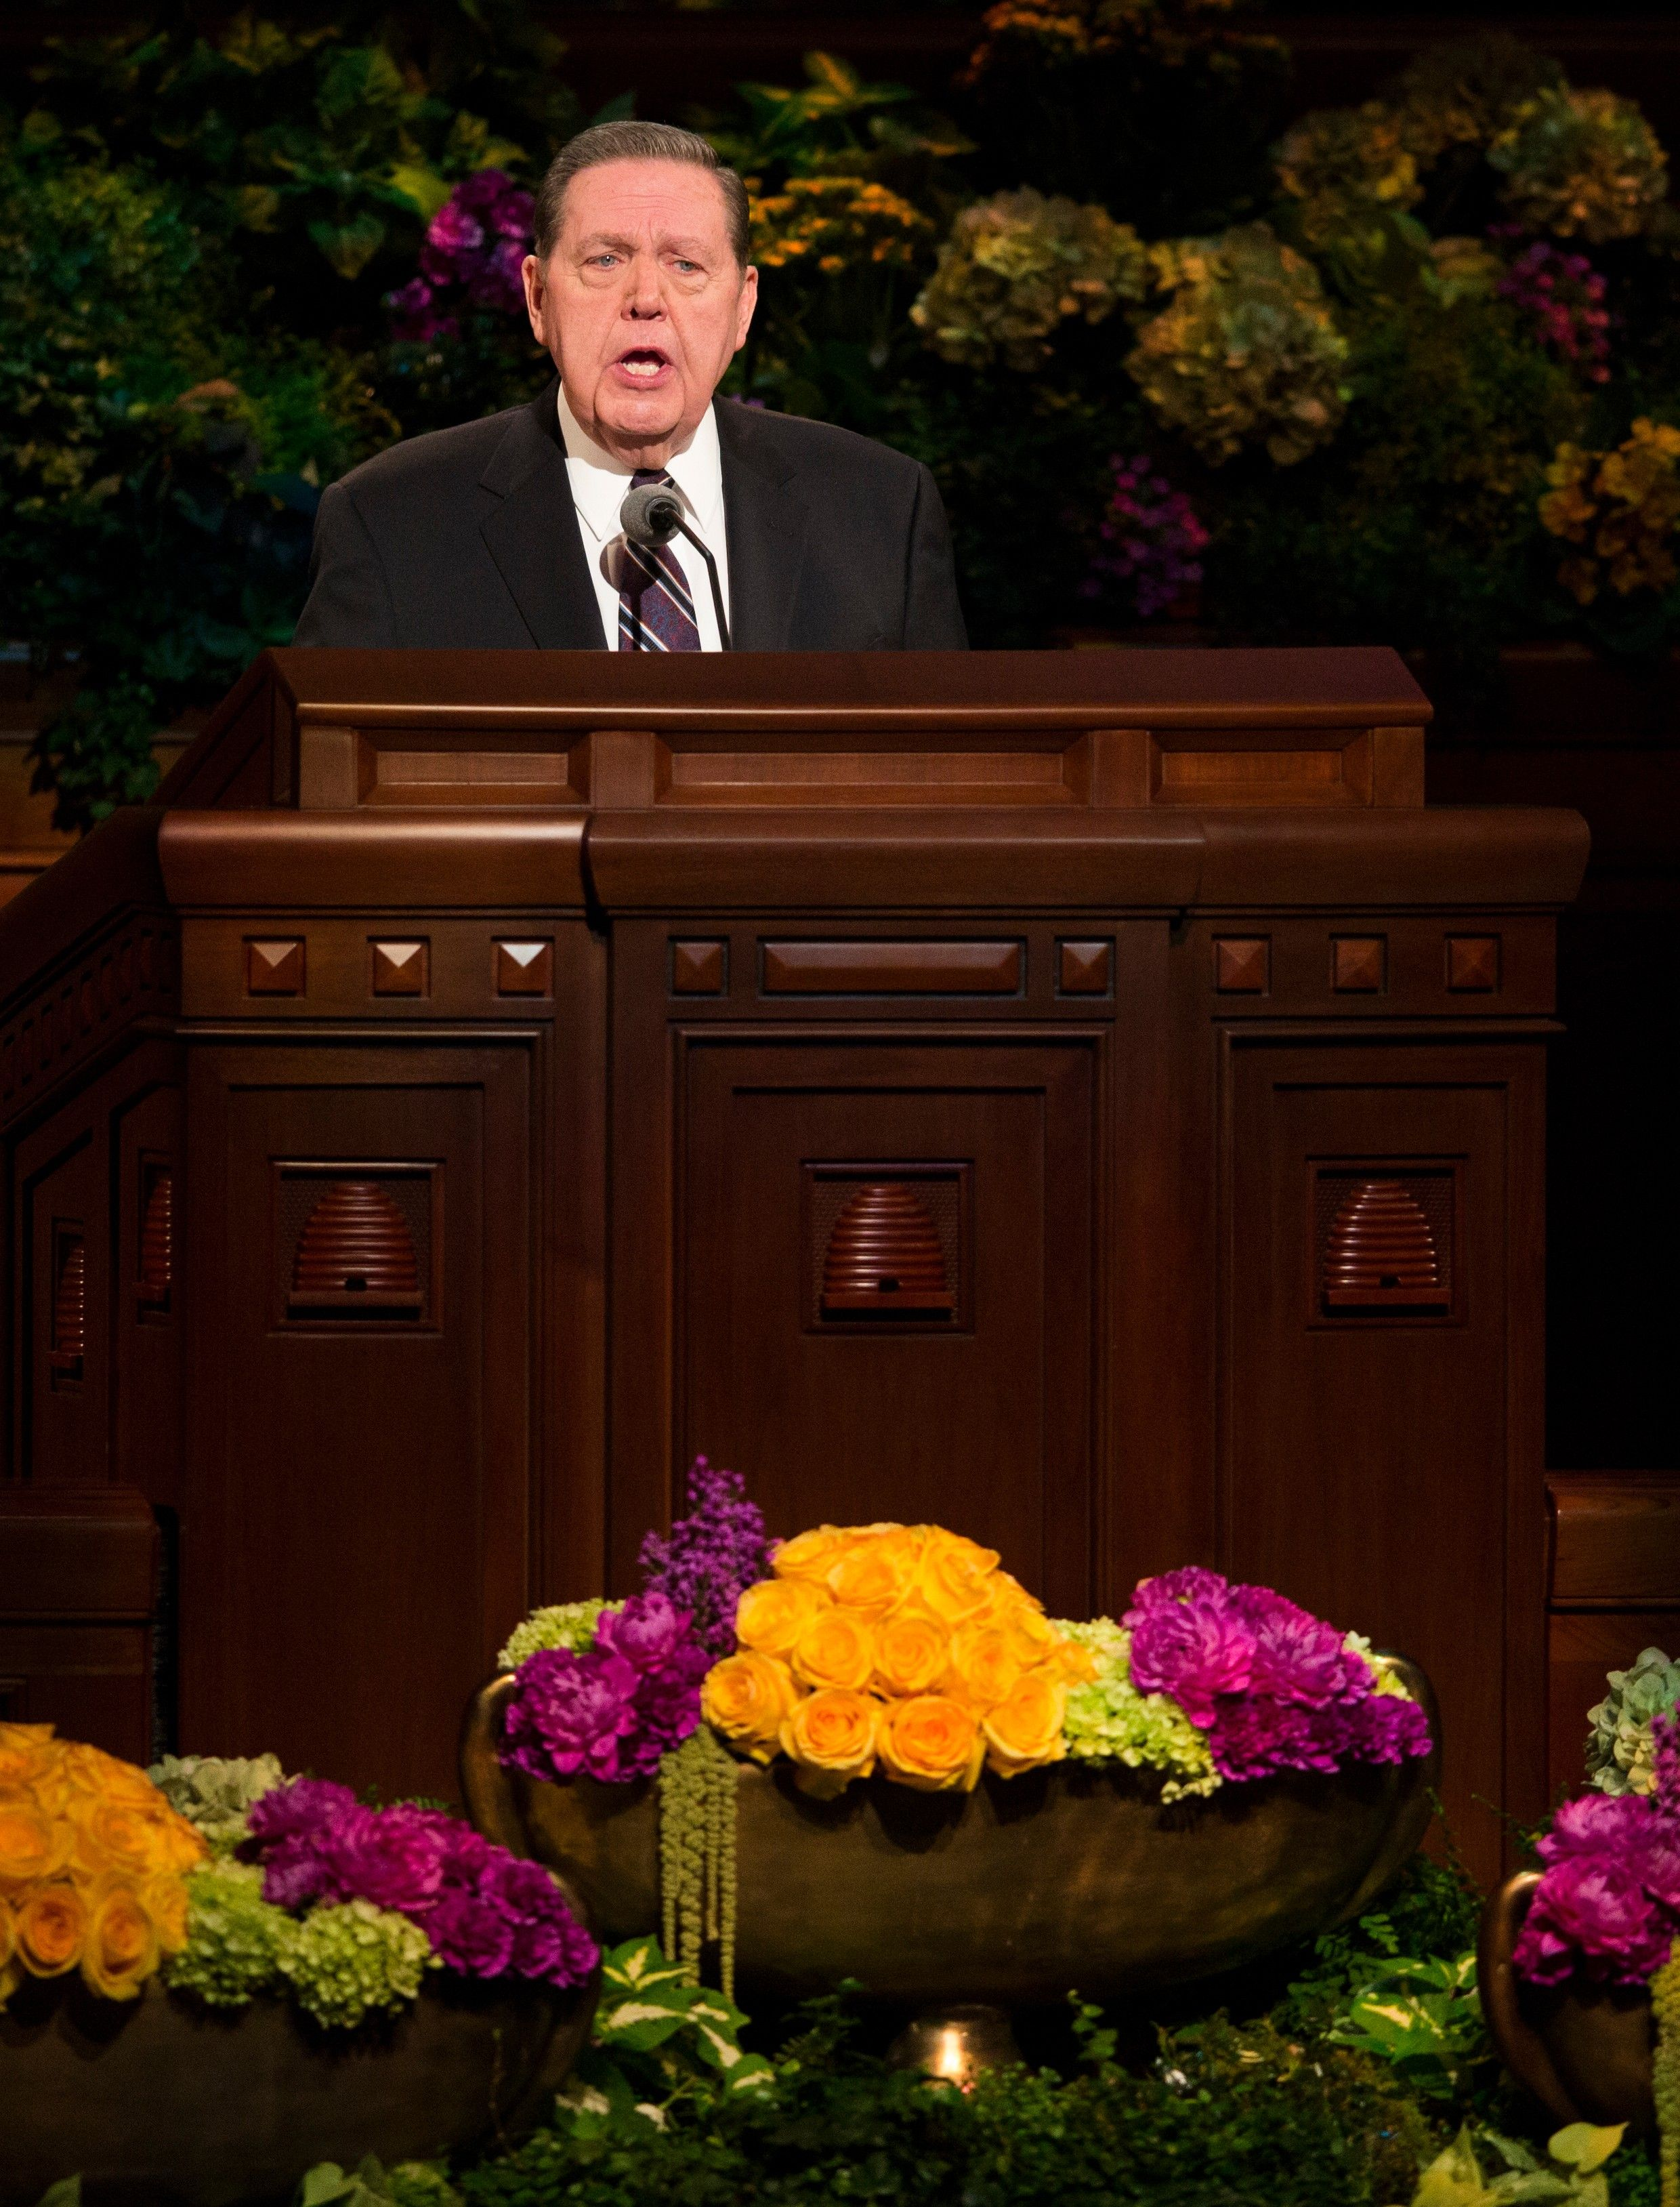 Jeffrey R. Holland standing and speaking behind the pulpit in general conference.